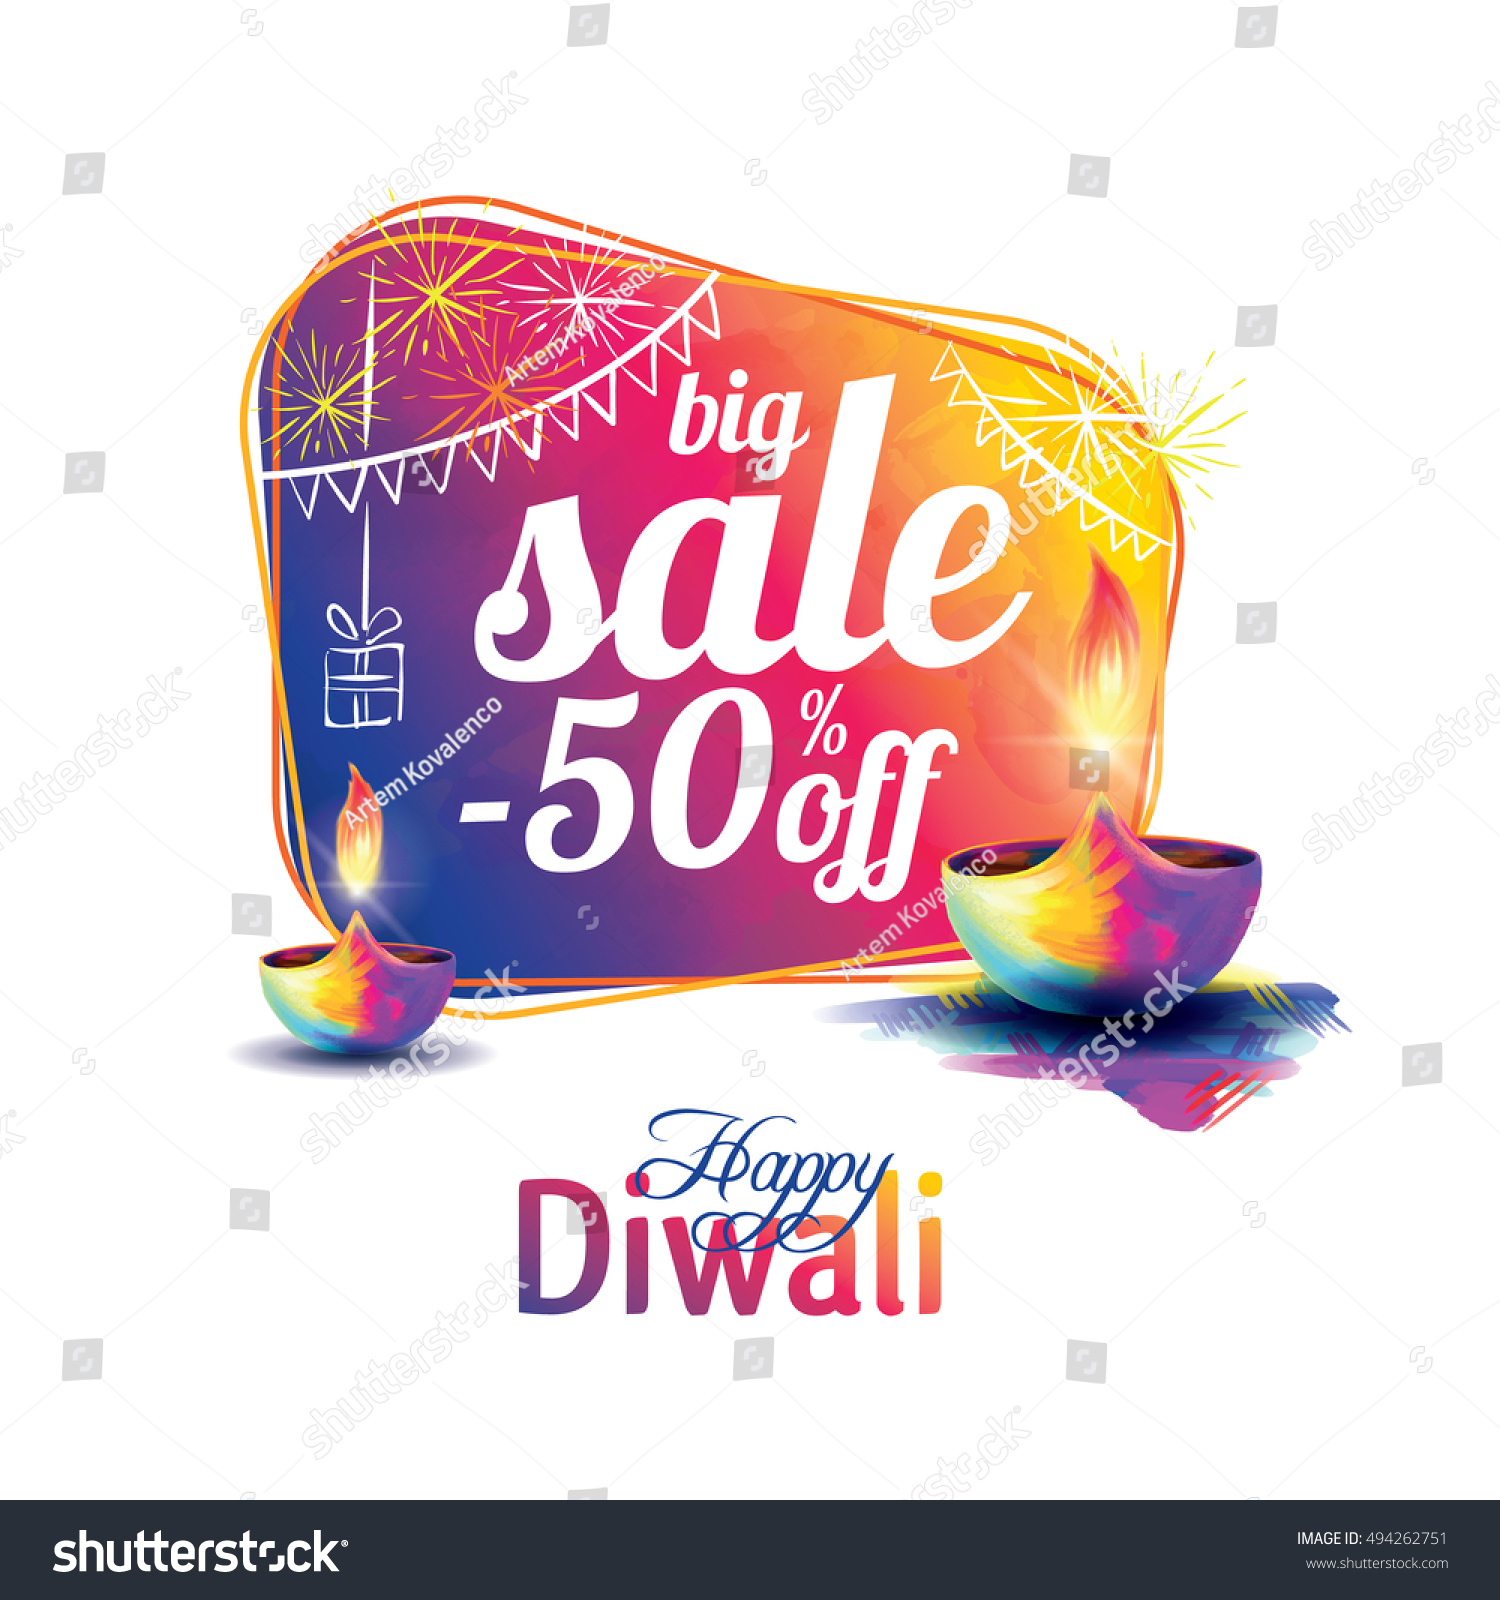 Vector illustration on the theme of the traditional celebration of happy diwali Deepavali light and fire festival